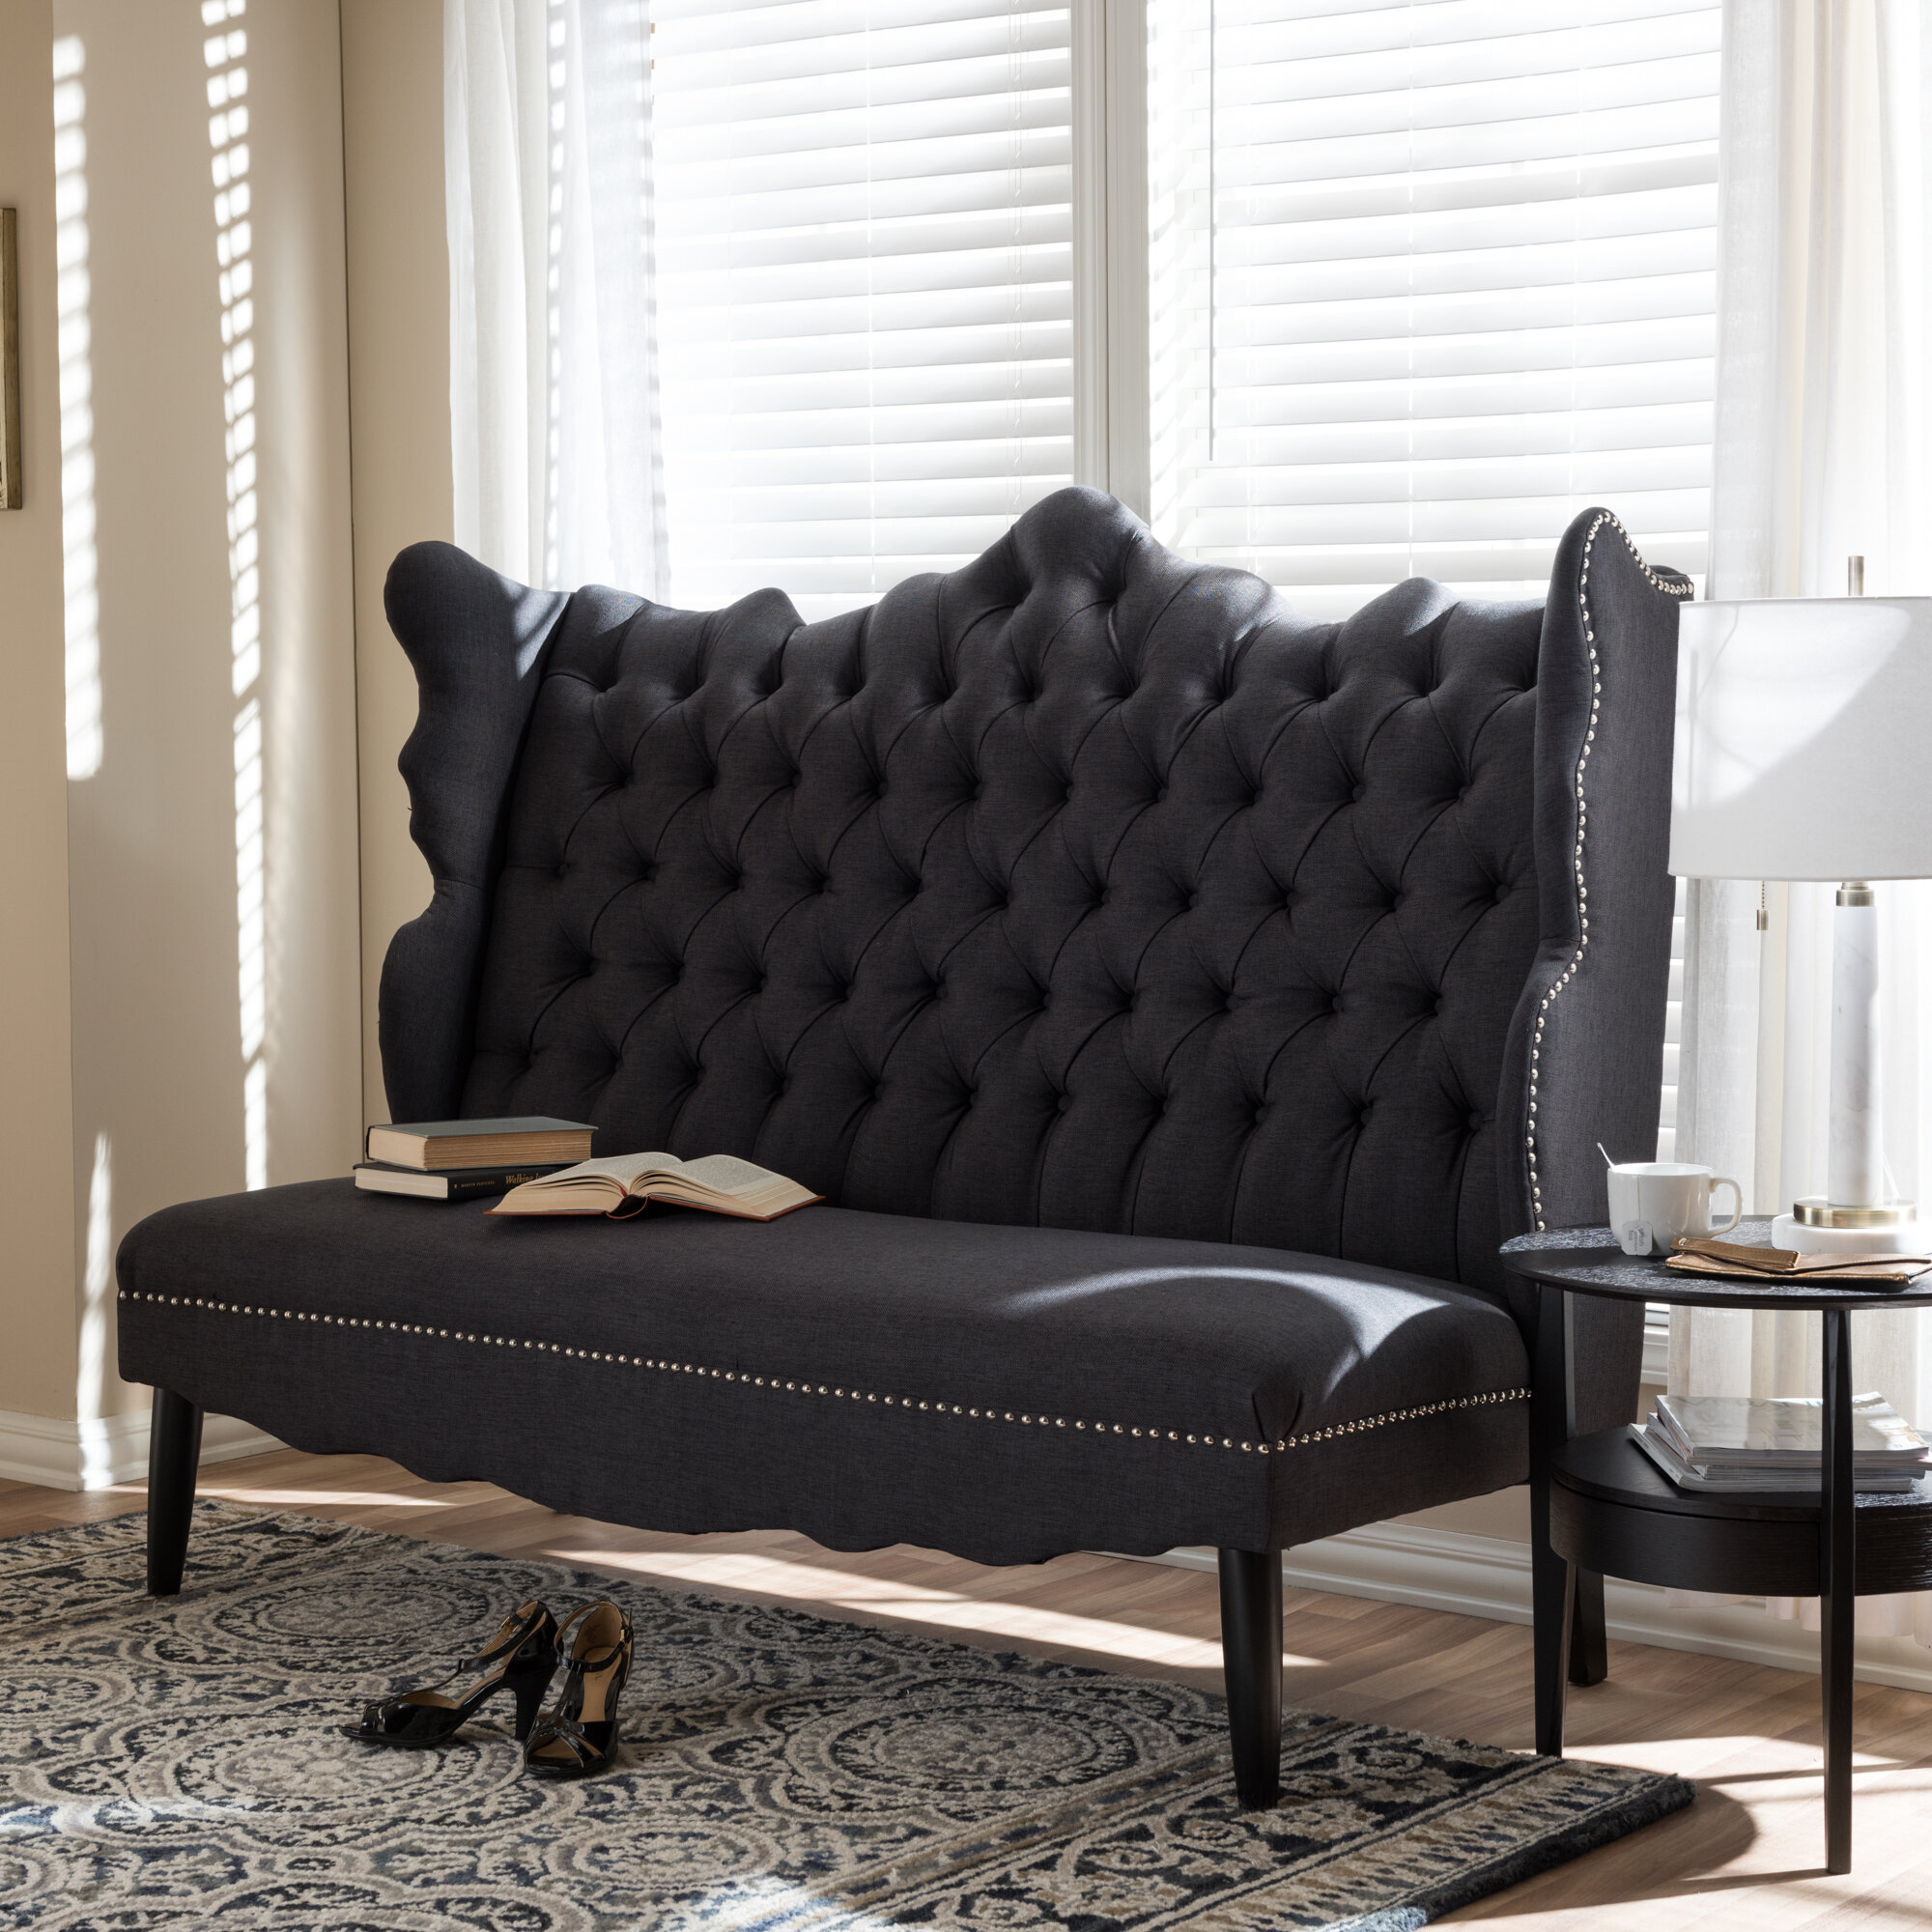 ideas delightful oak of end modern easton drawers foot settee upholstered with black long wooden furniture full pics velvet on uk bedroom breathtaking storage white leather king yellow narrow wicker contemporary tufted seat size bench padded for sea chairs